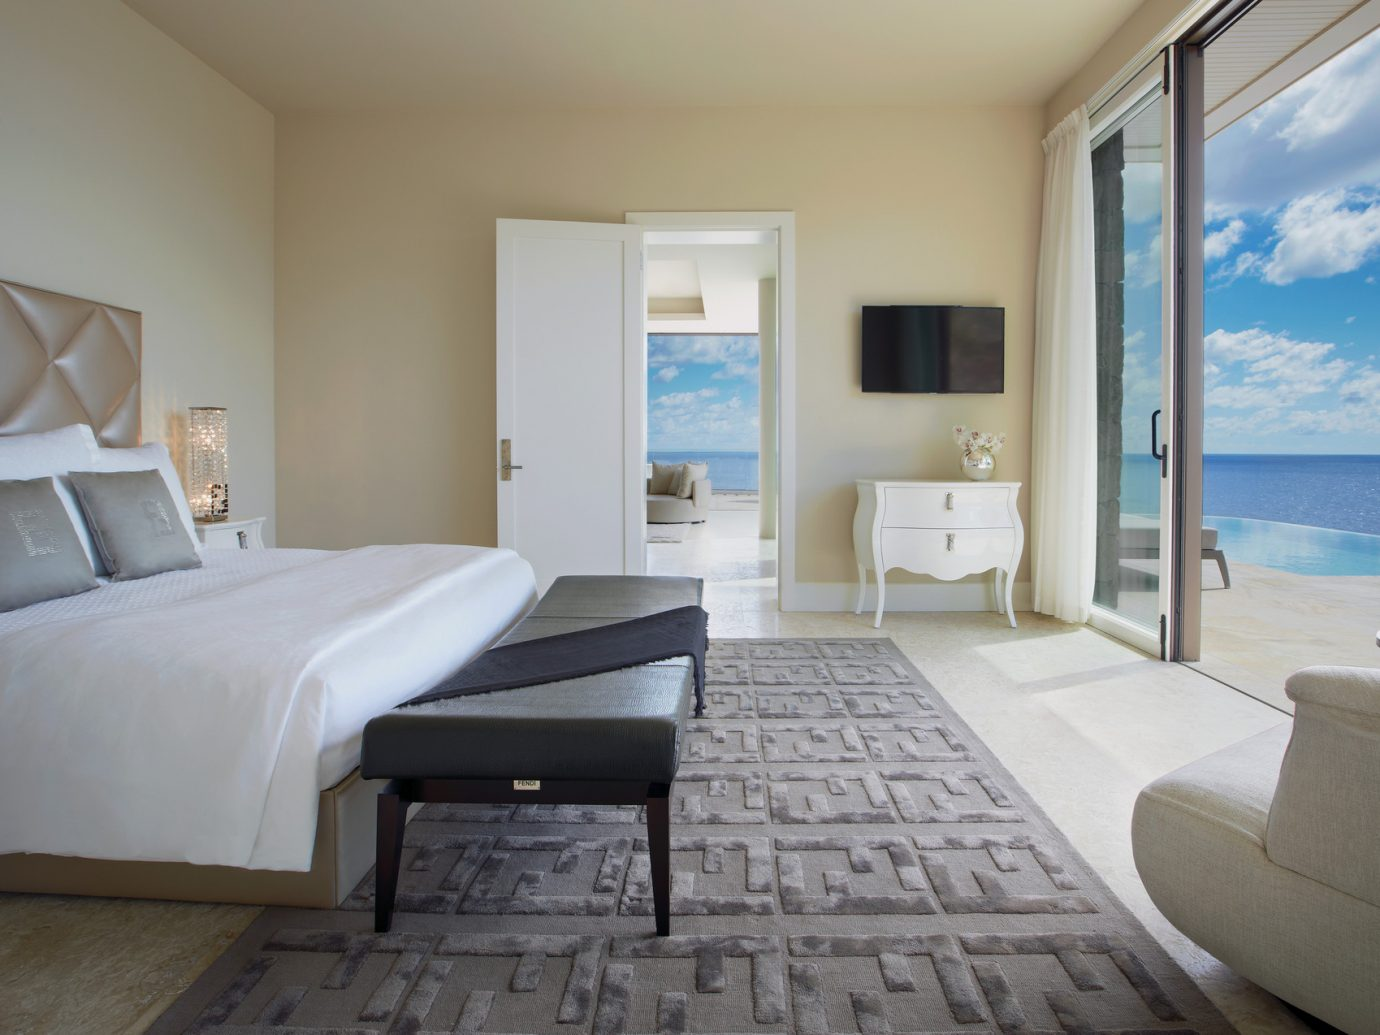 Bedroom at Oil Nut Bay